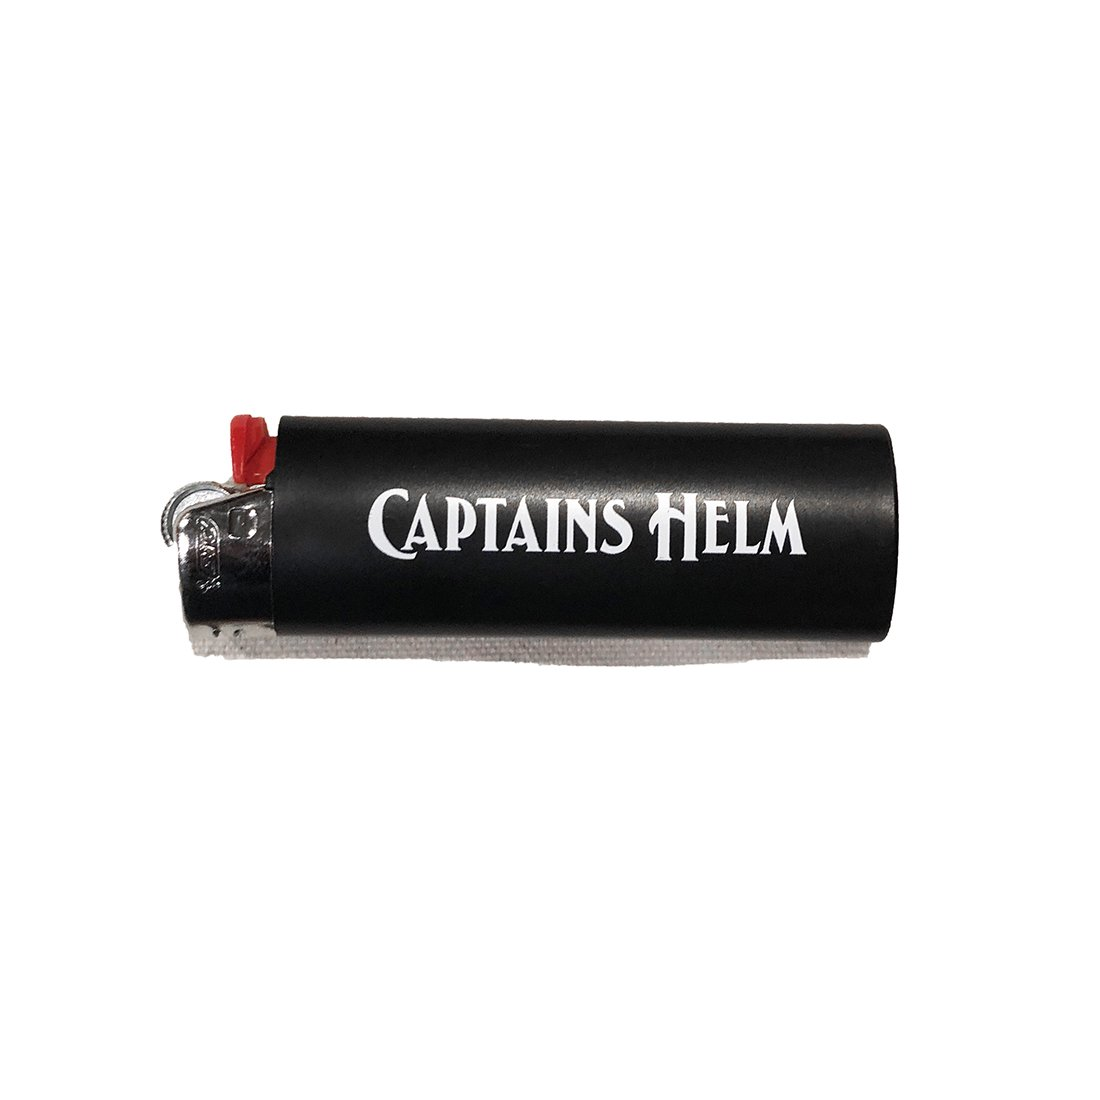 CAPTAINS HELM   #LOGO LIGHTER